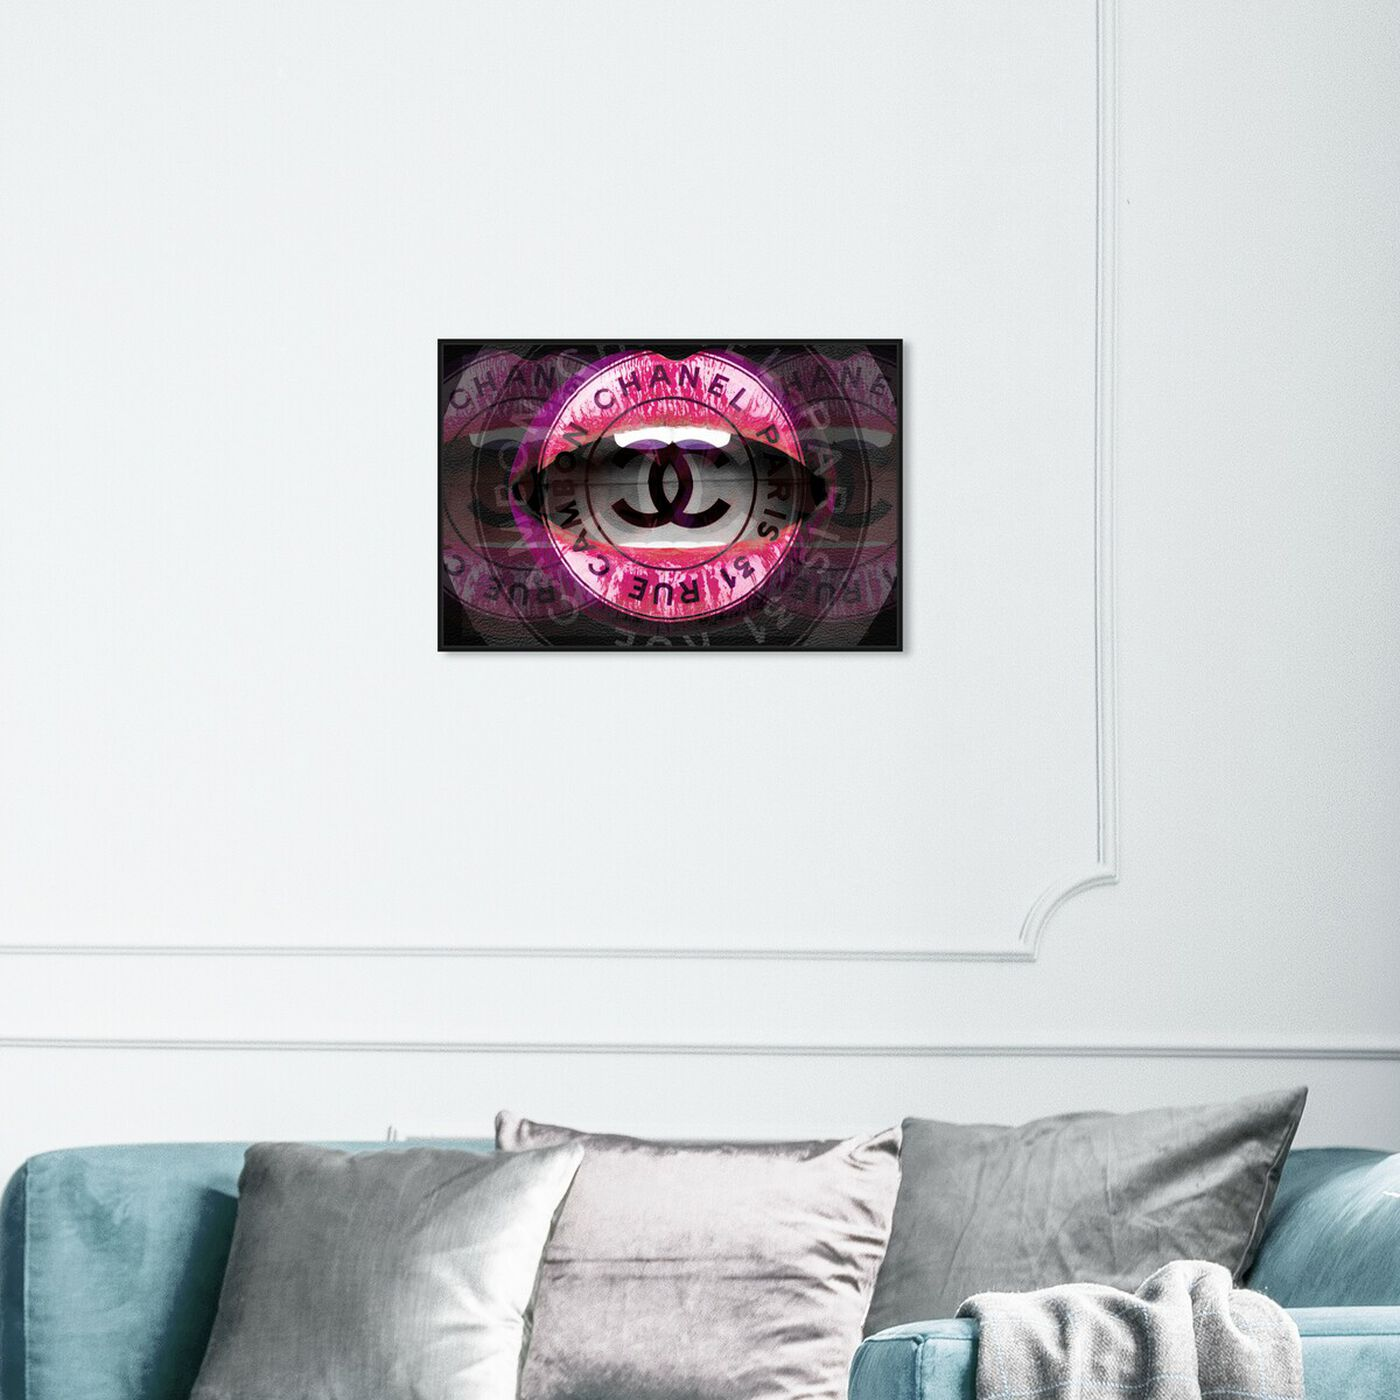 Hanging view of Lips in Paris featuring fashion and glam and lips art.